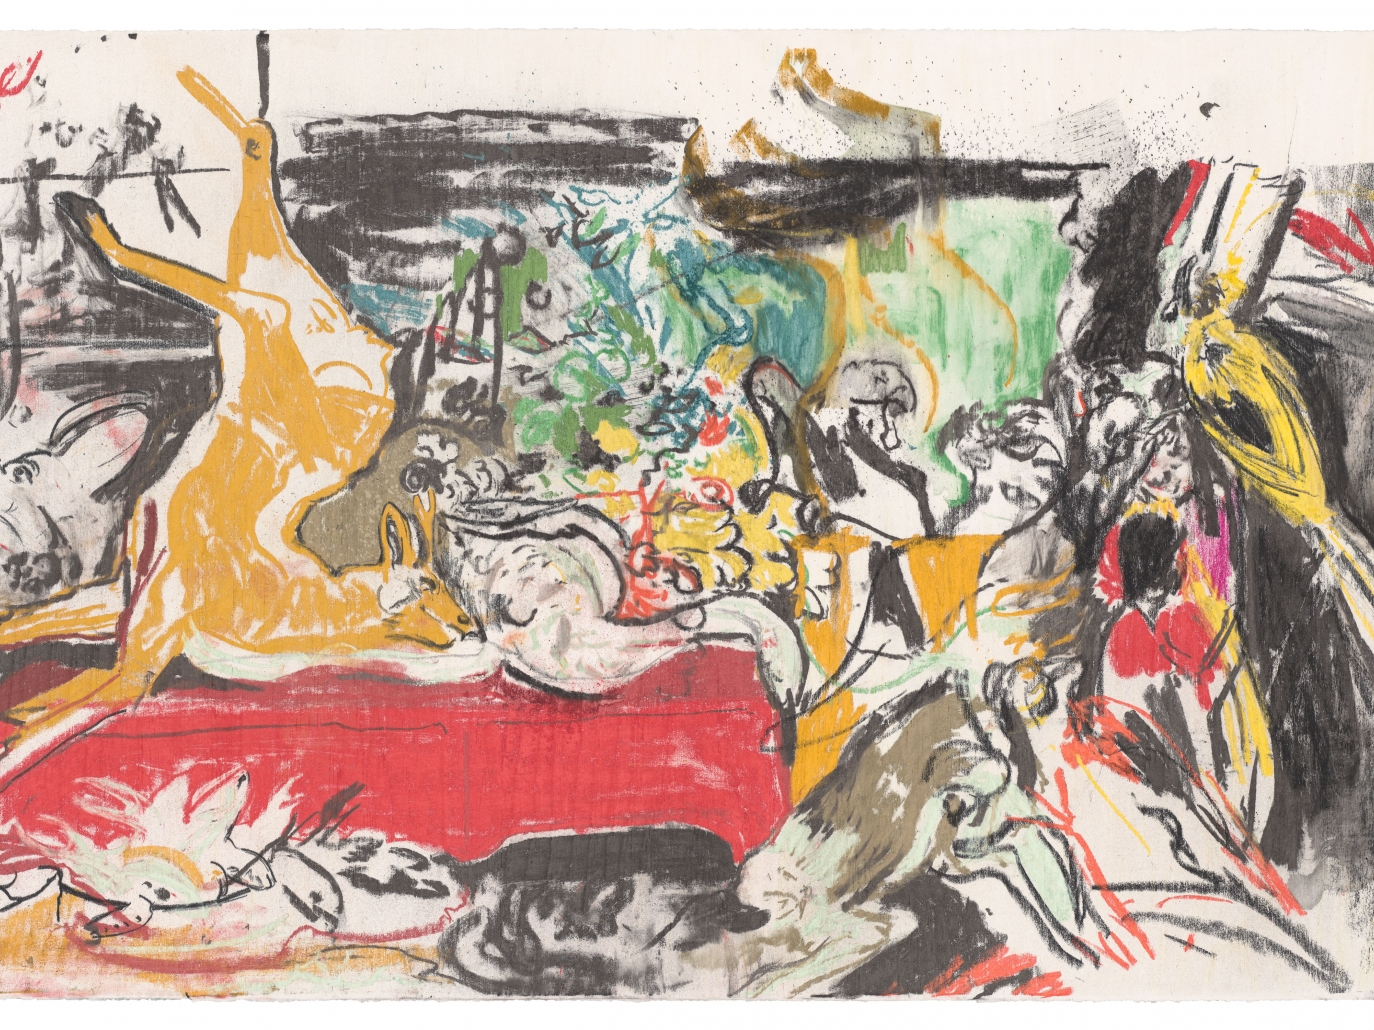 Cecily Brown: The Calls of the Hunting Horn